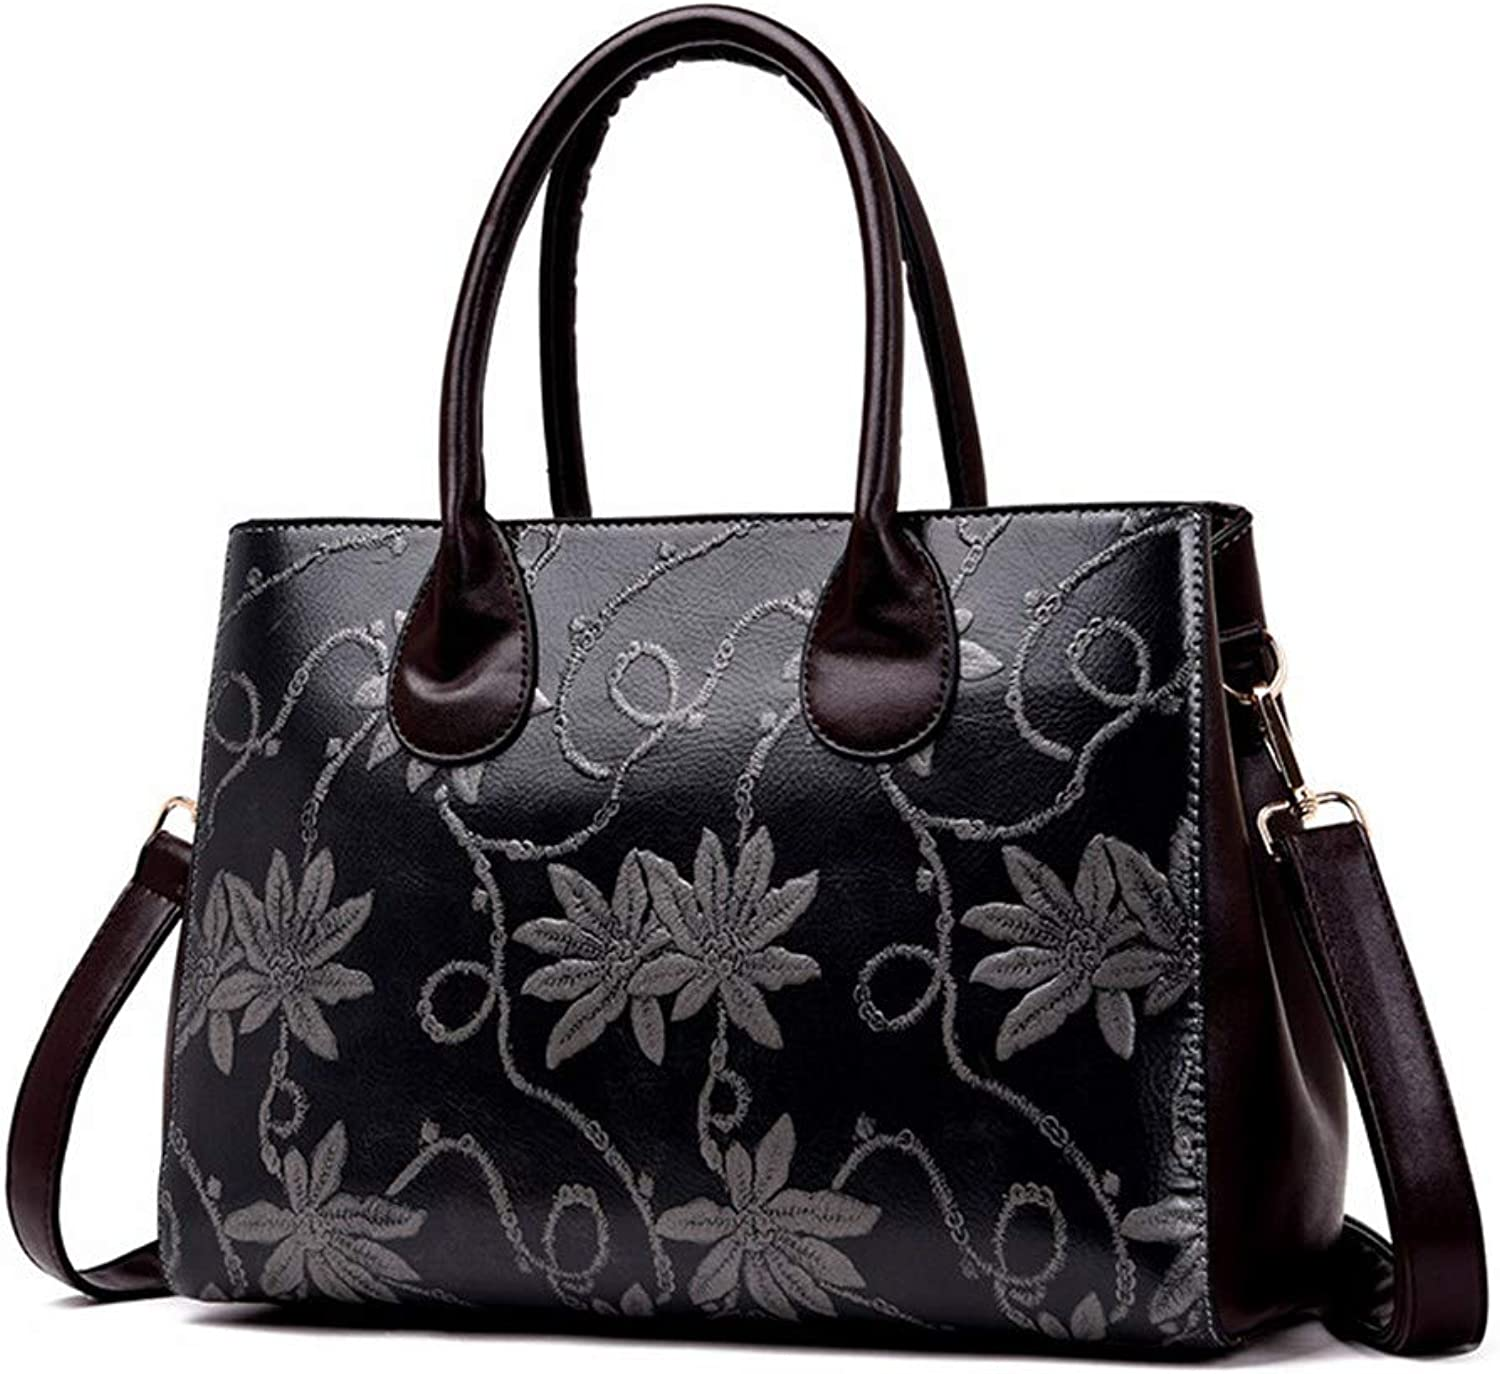 NZZNB Fashion Flower-Pattern Women's Bag with Refined Ancient Printing Patterns Single-Shoulder Bag with Slant Bag Top-Handle Handbags